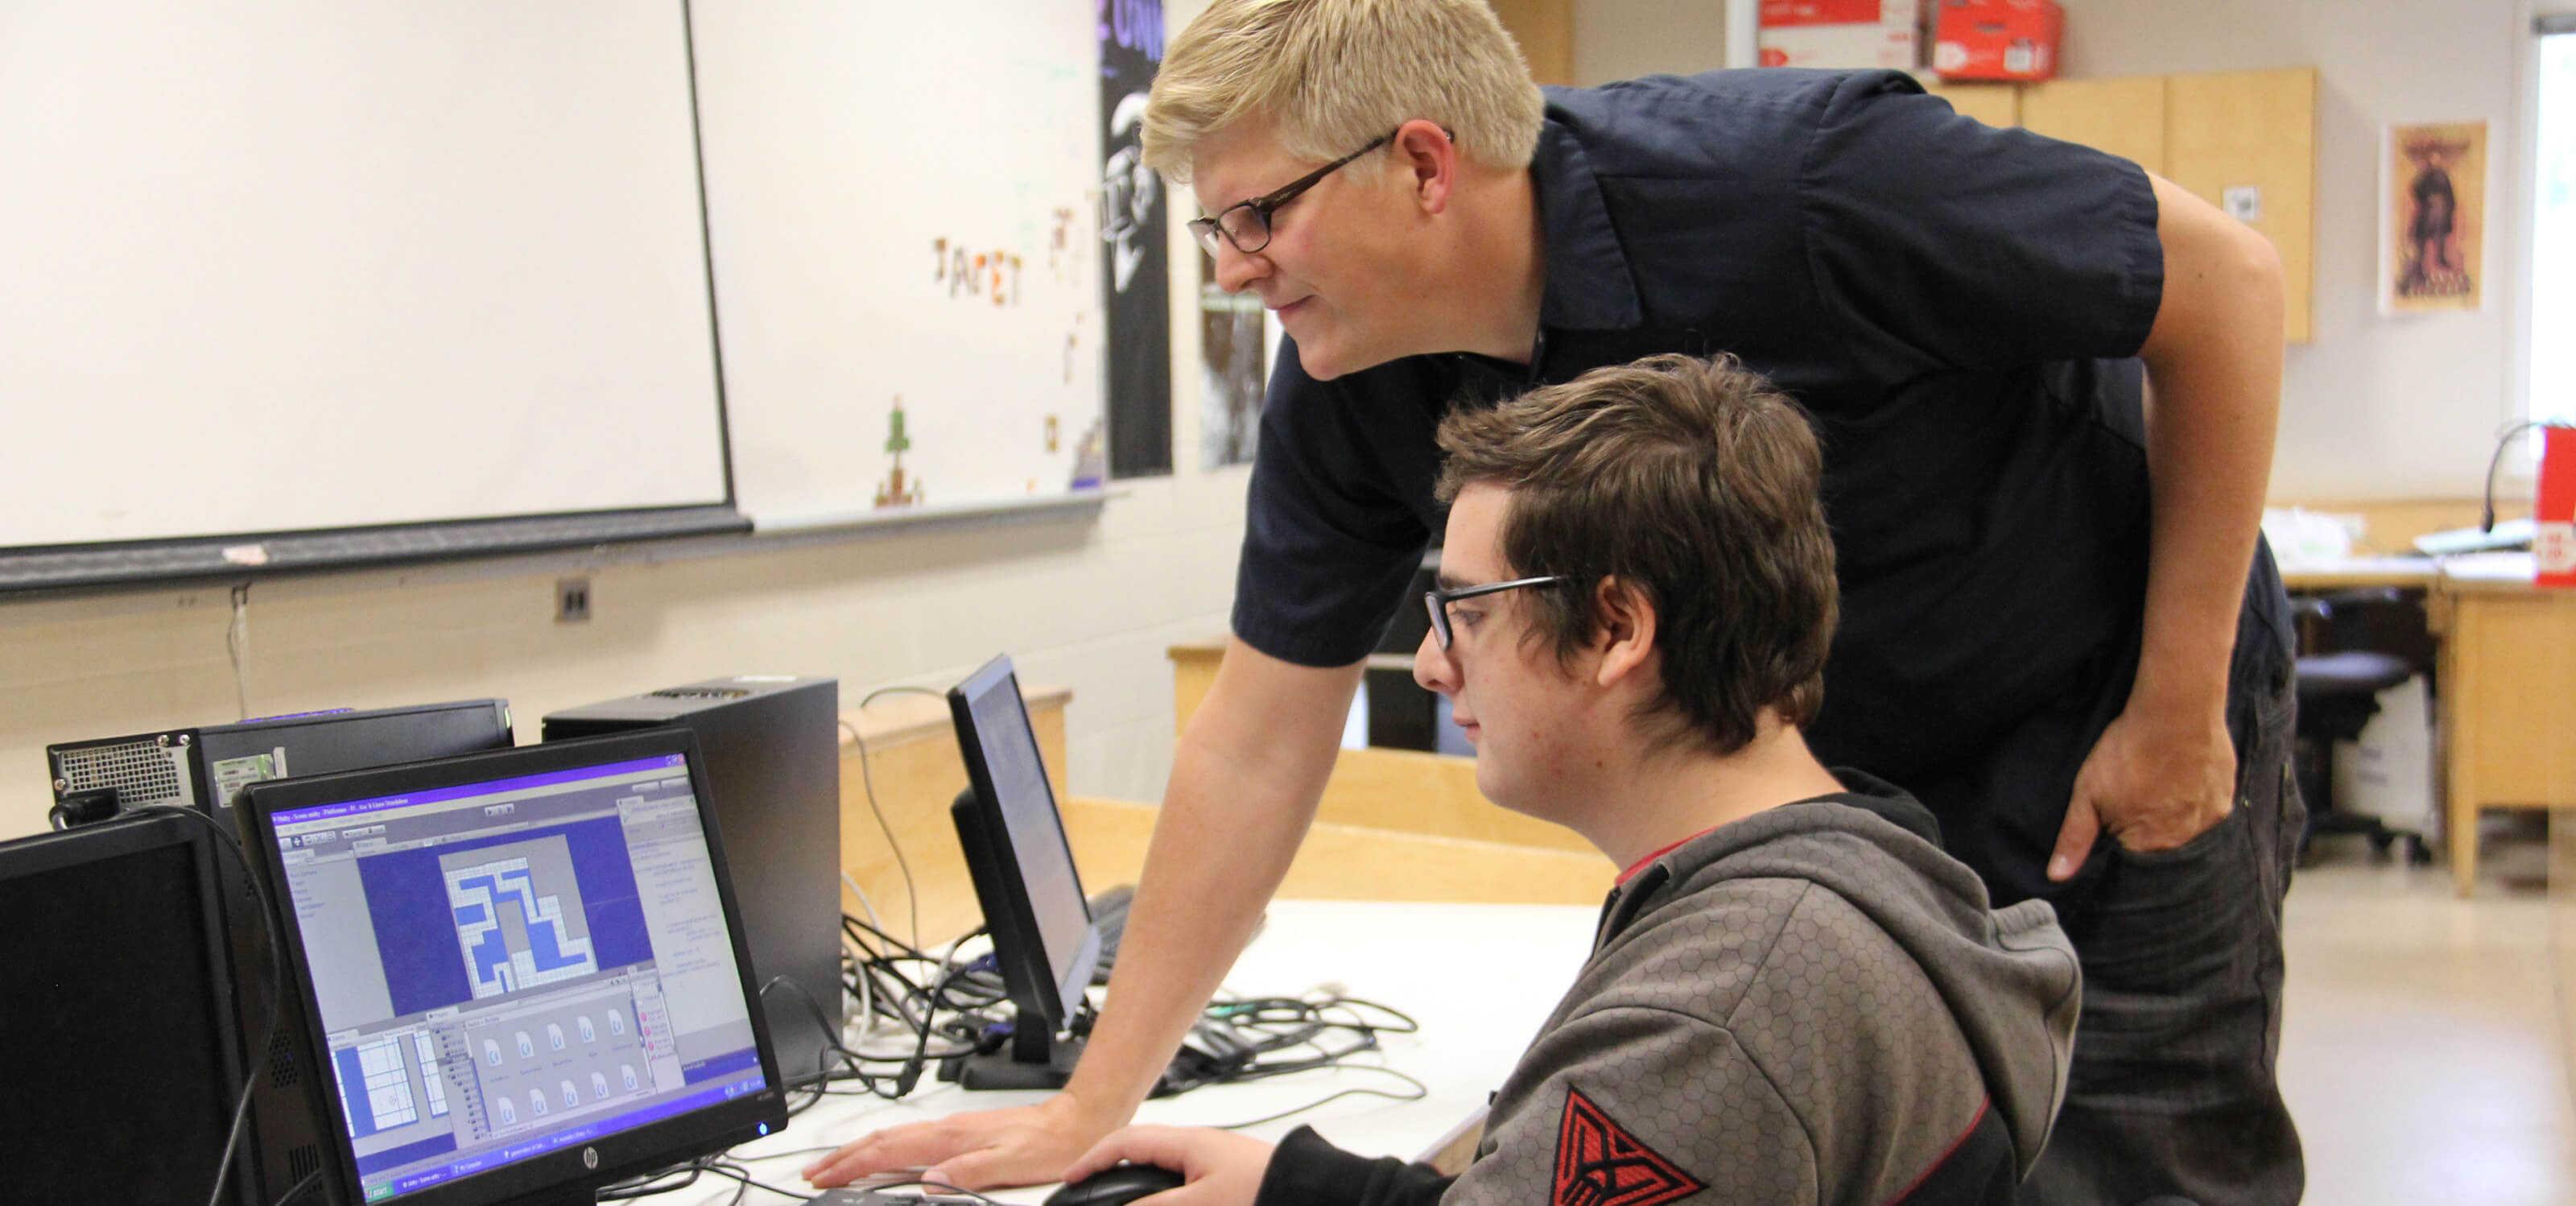 Student and teacher looking at a computer monitor in a Kamloops, British Columbia classroom